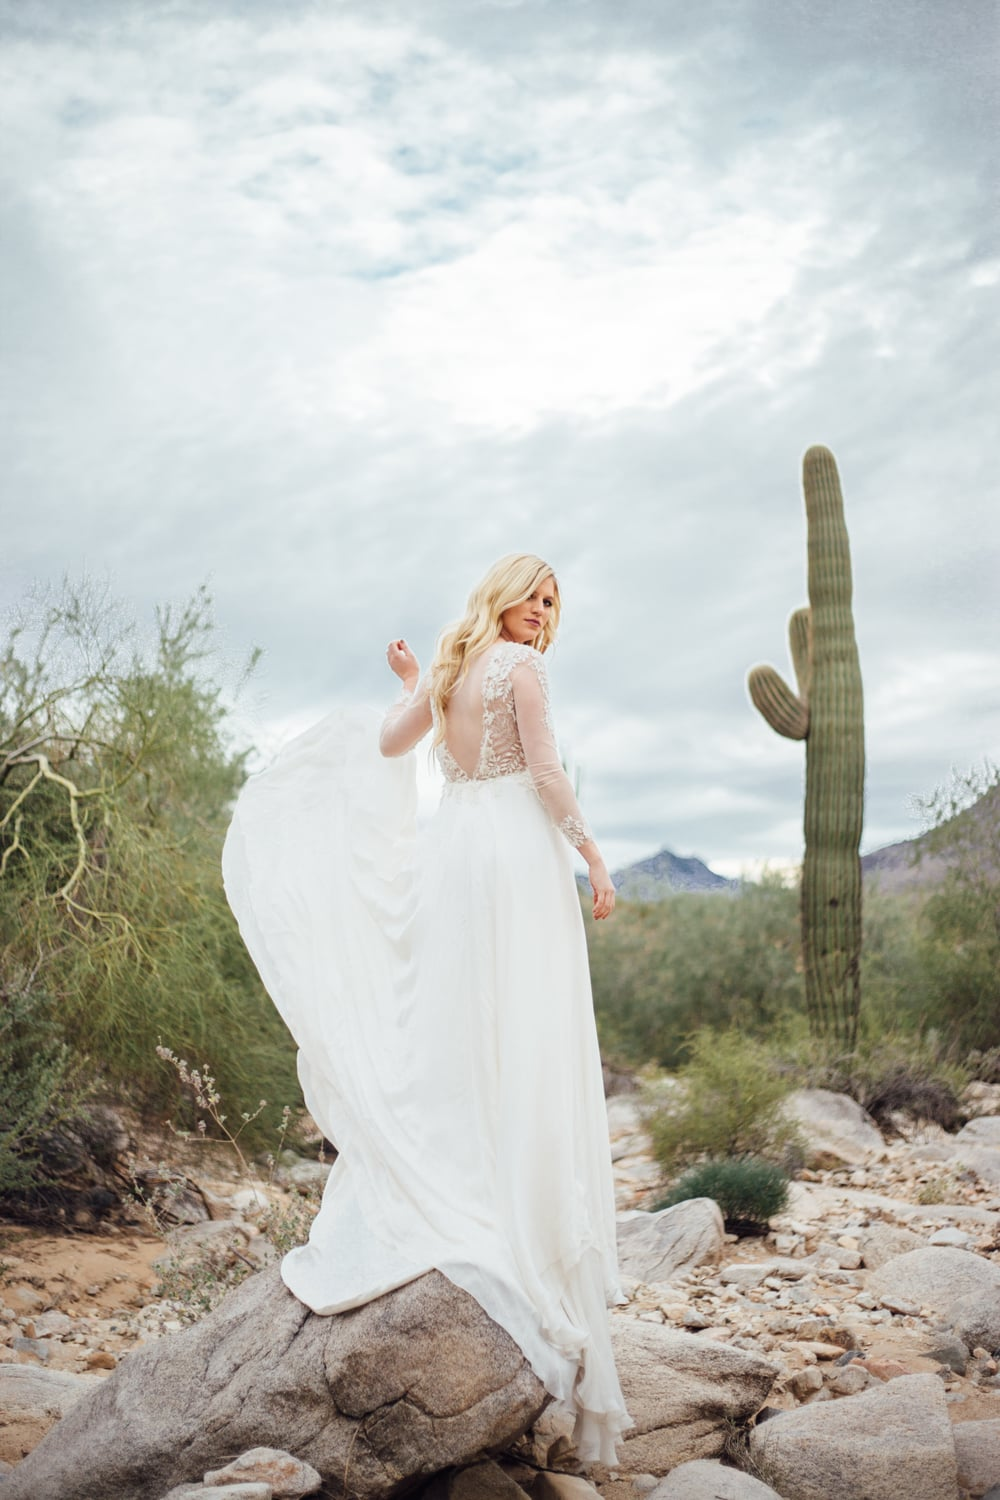 willowbridal gown by tanya anic alexandra loraine photography 2.jpg